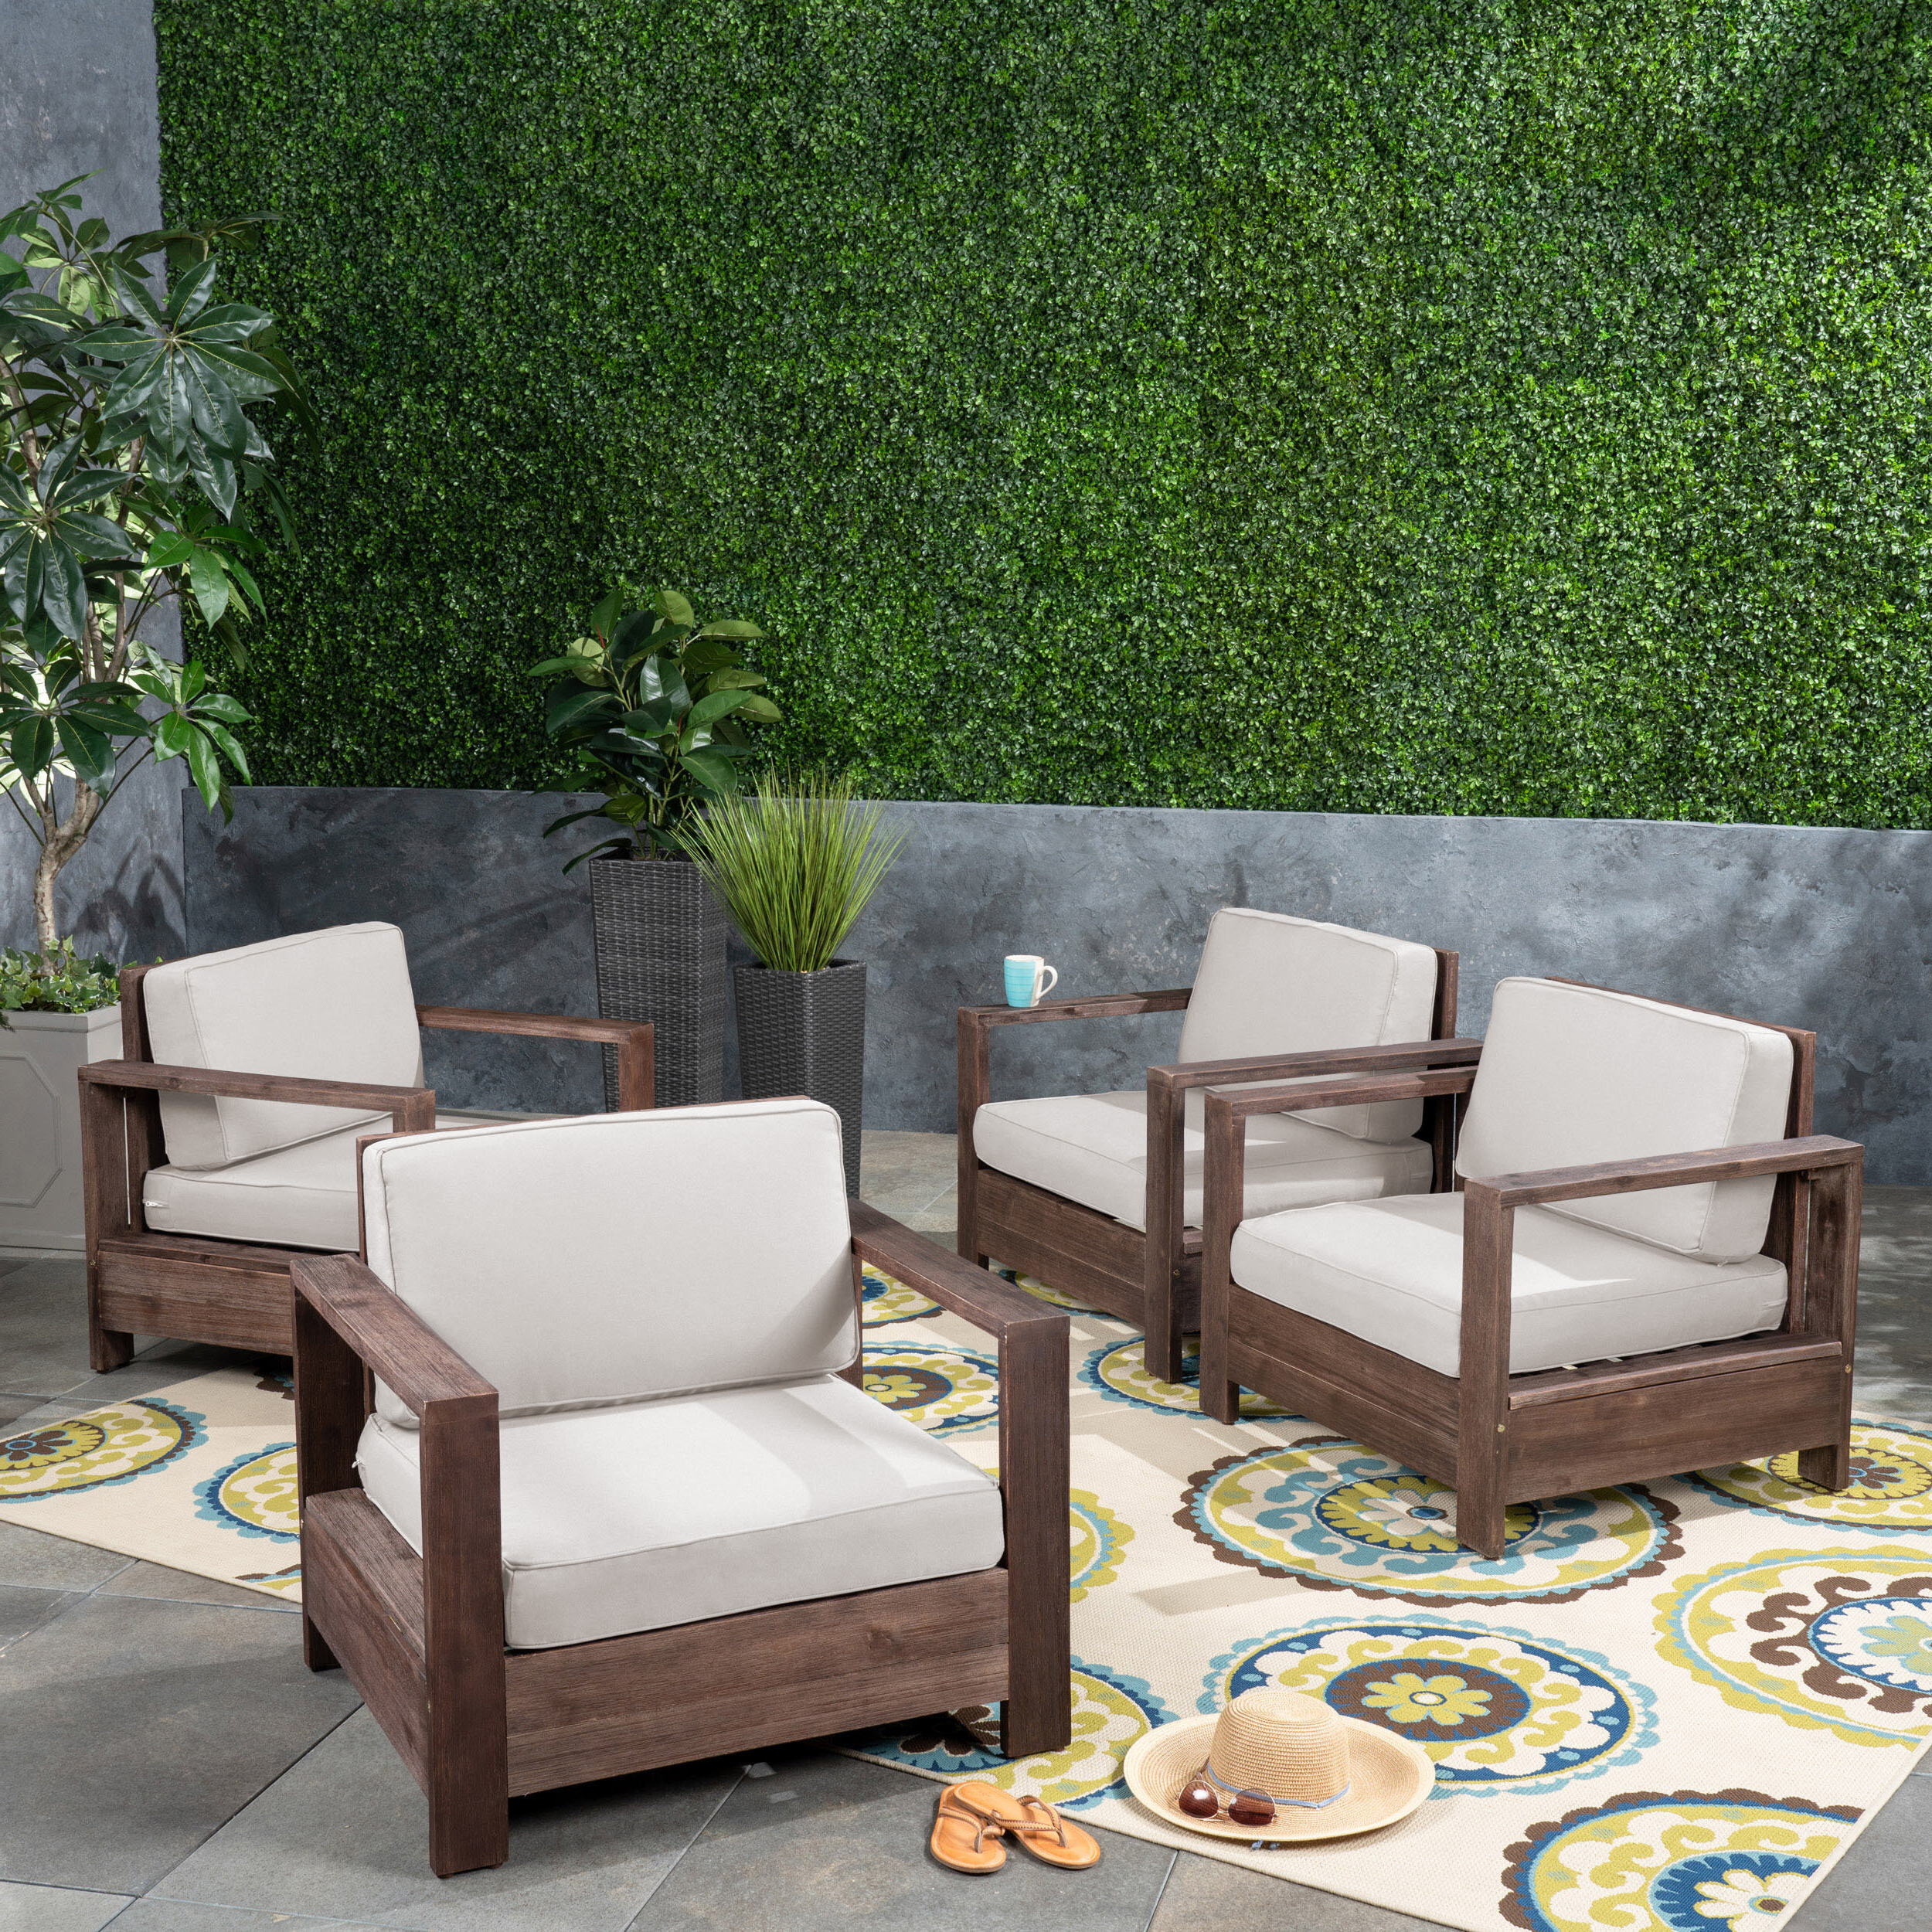 Current Landis Loveseats With Cushions Intended For Landis Patio Chair With Cushions (View 10 of 25)